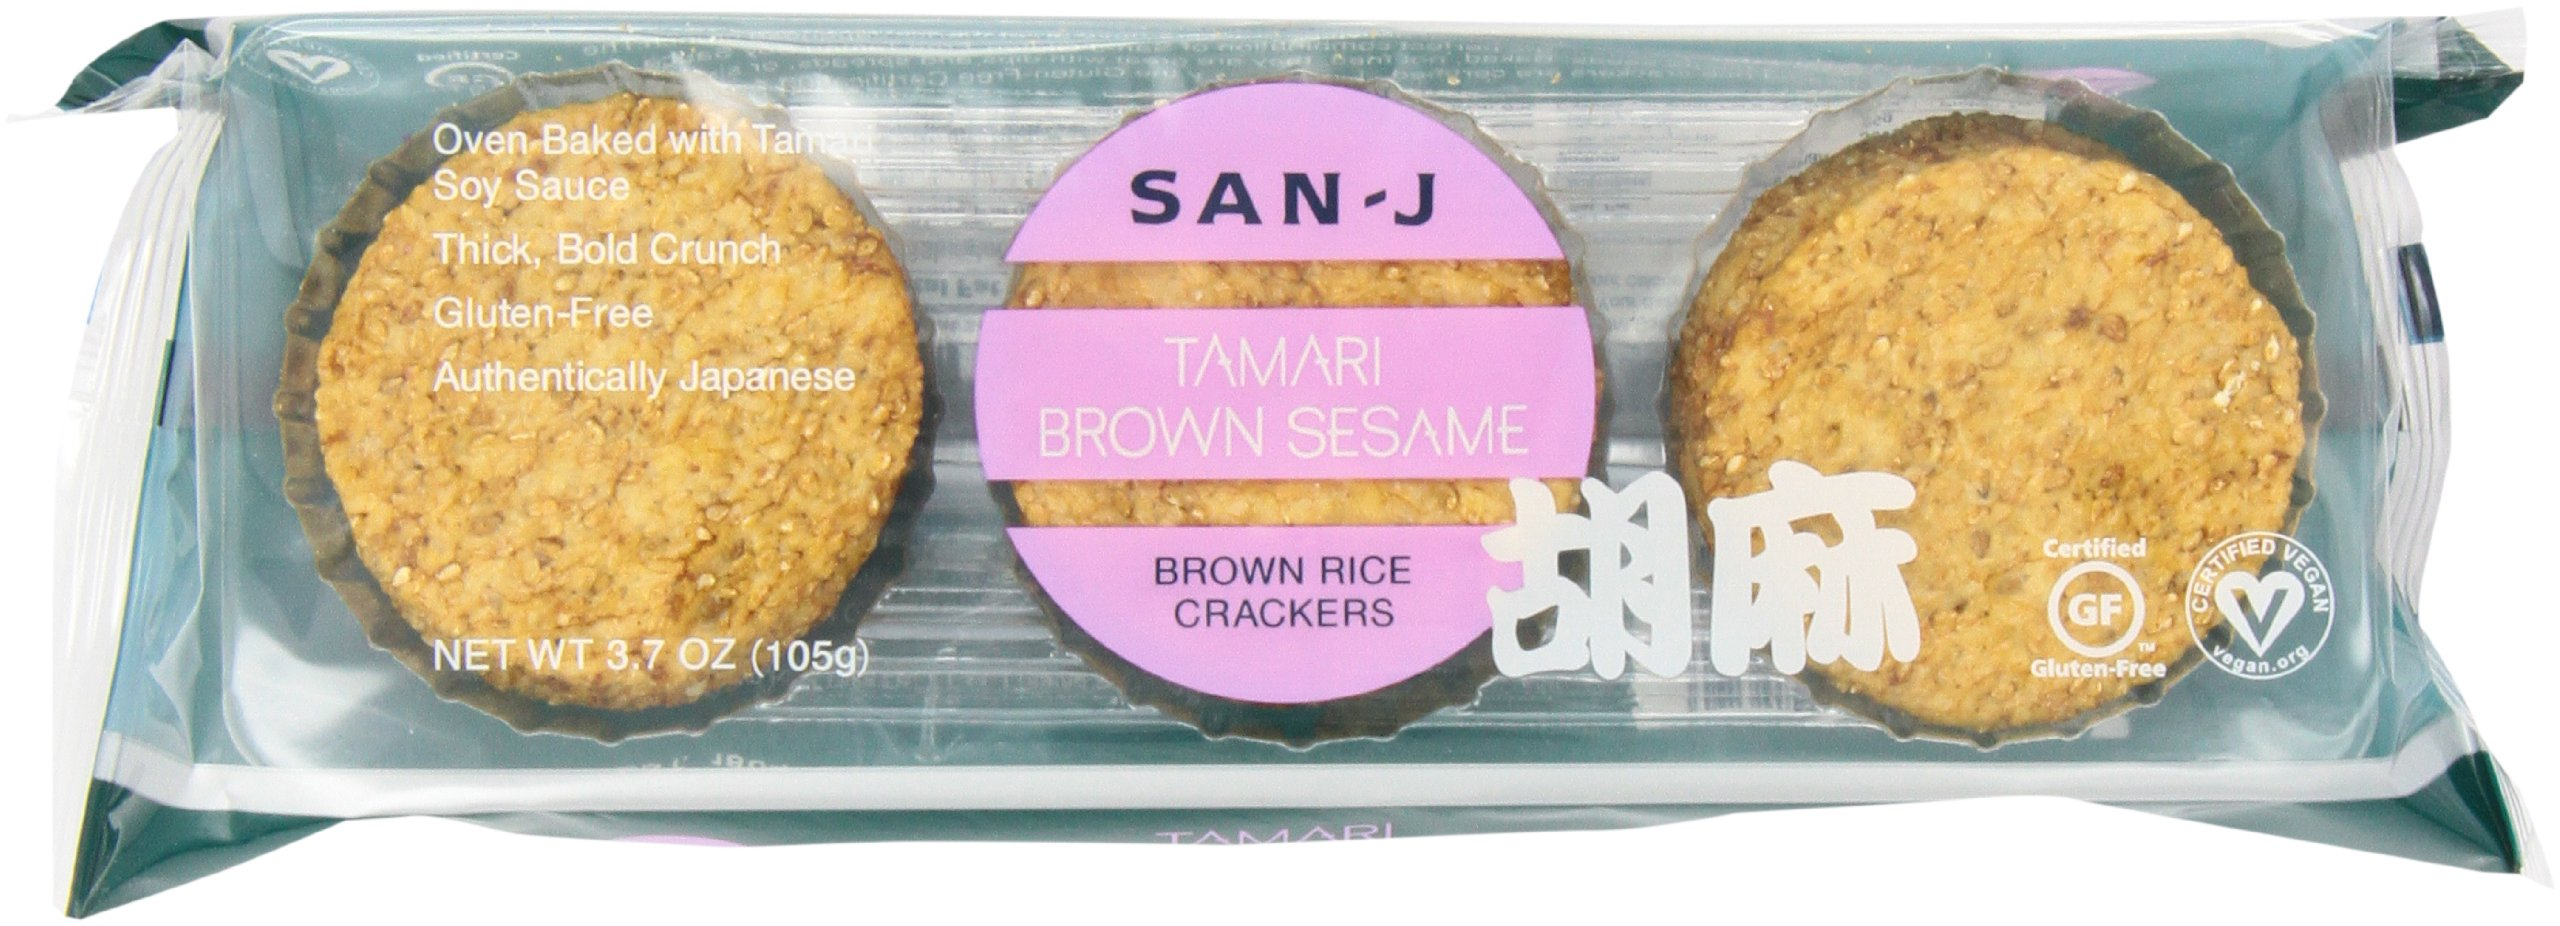 San-J Sesame Brown Rice Crackers, 3.7-Ounce Packages (Pack of 12)